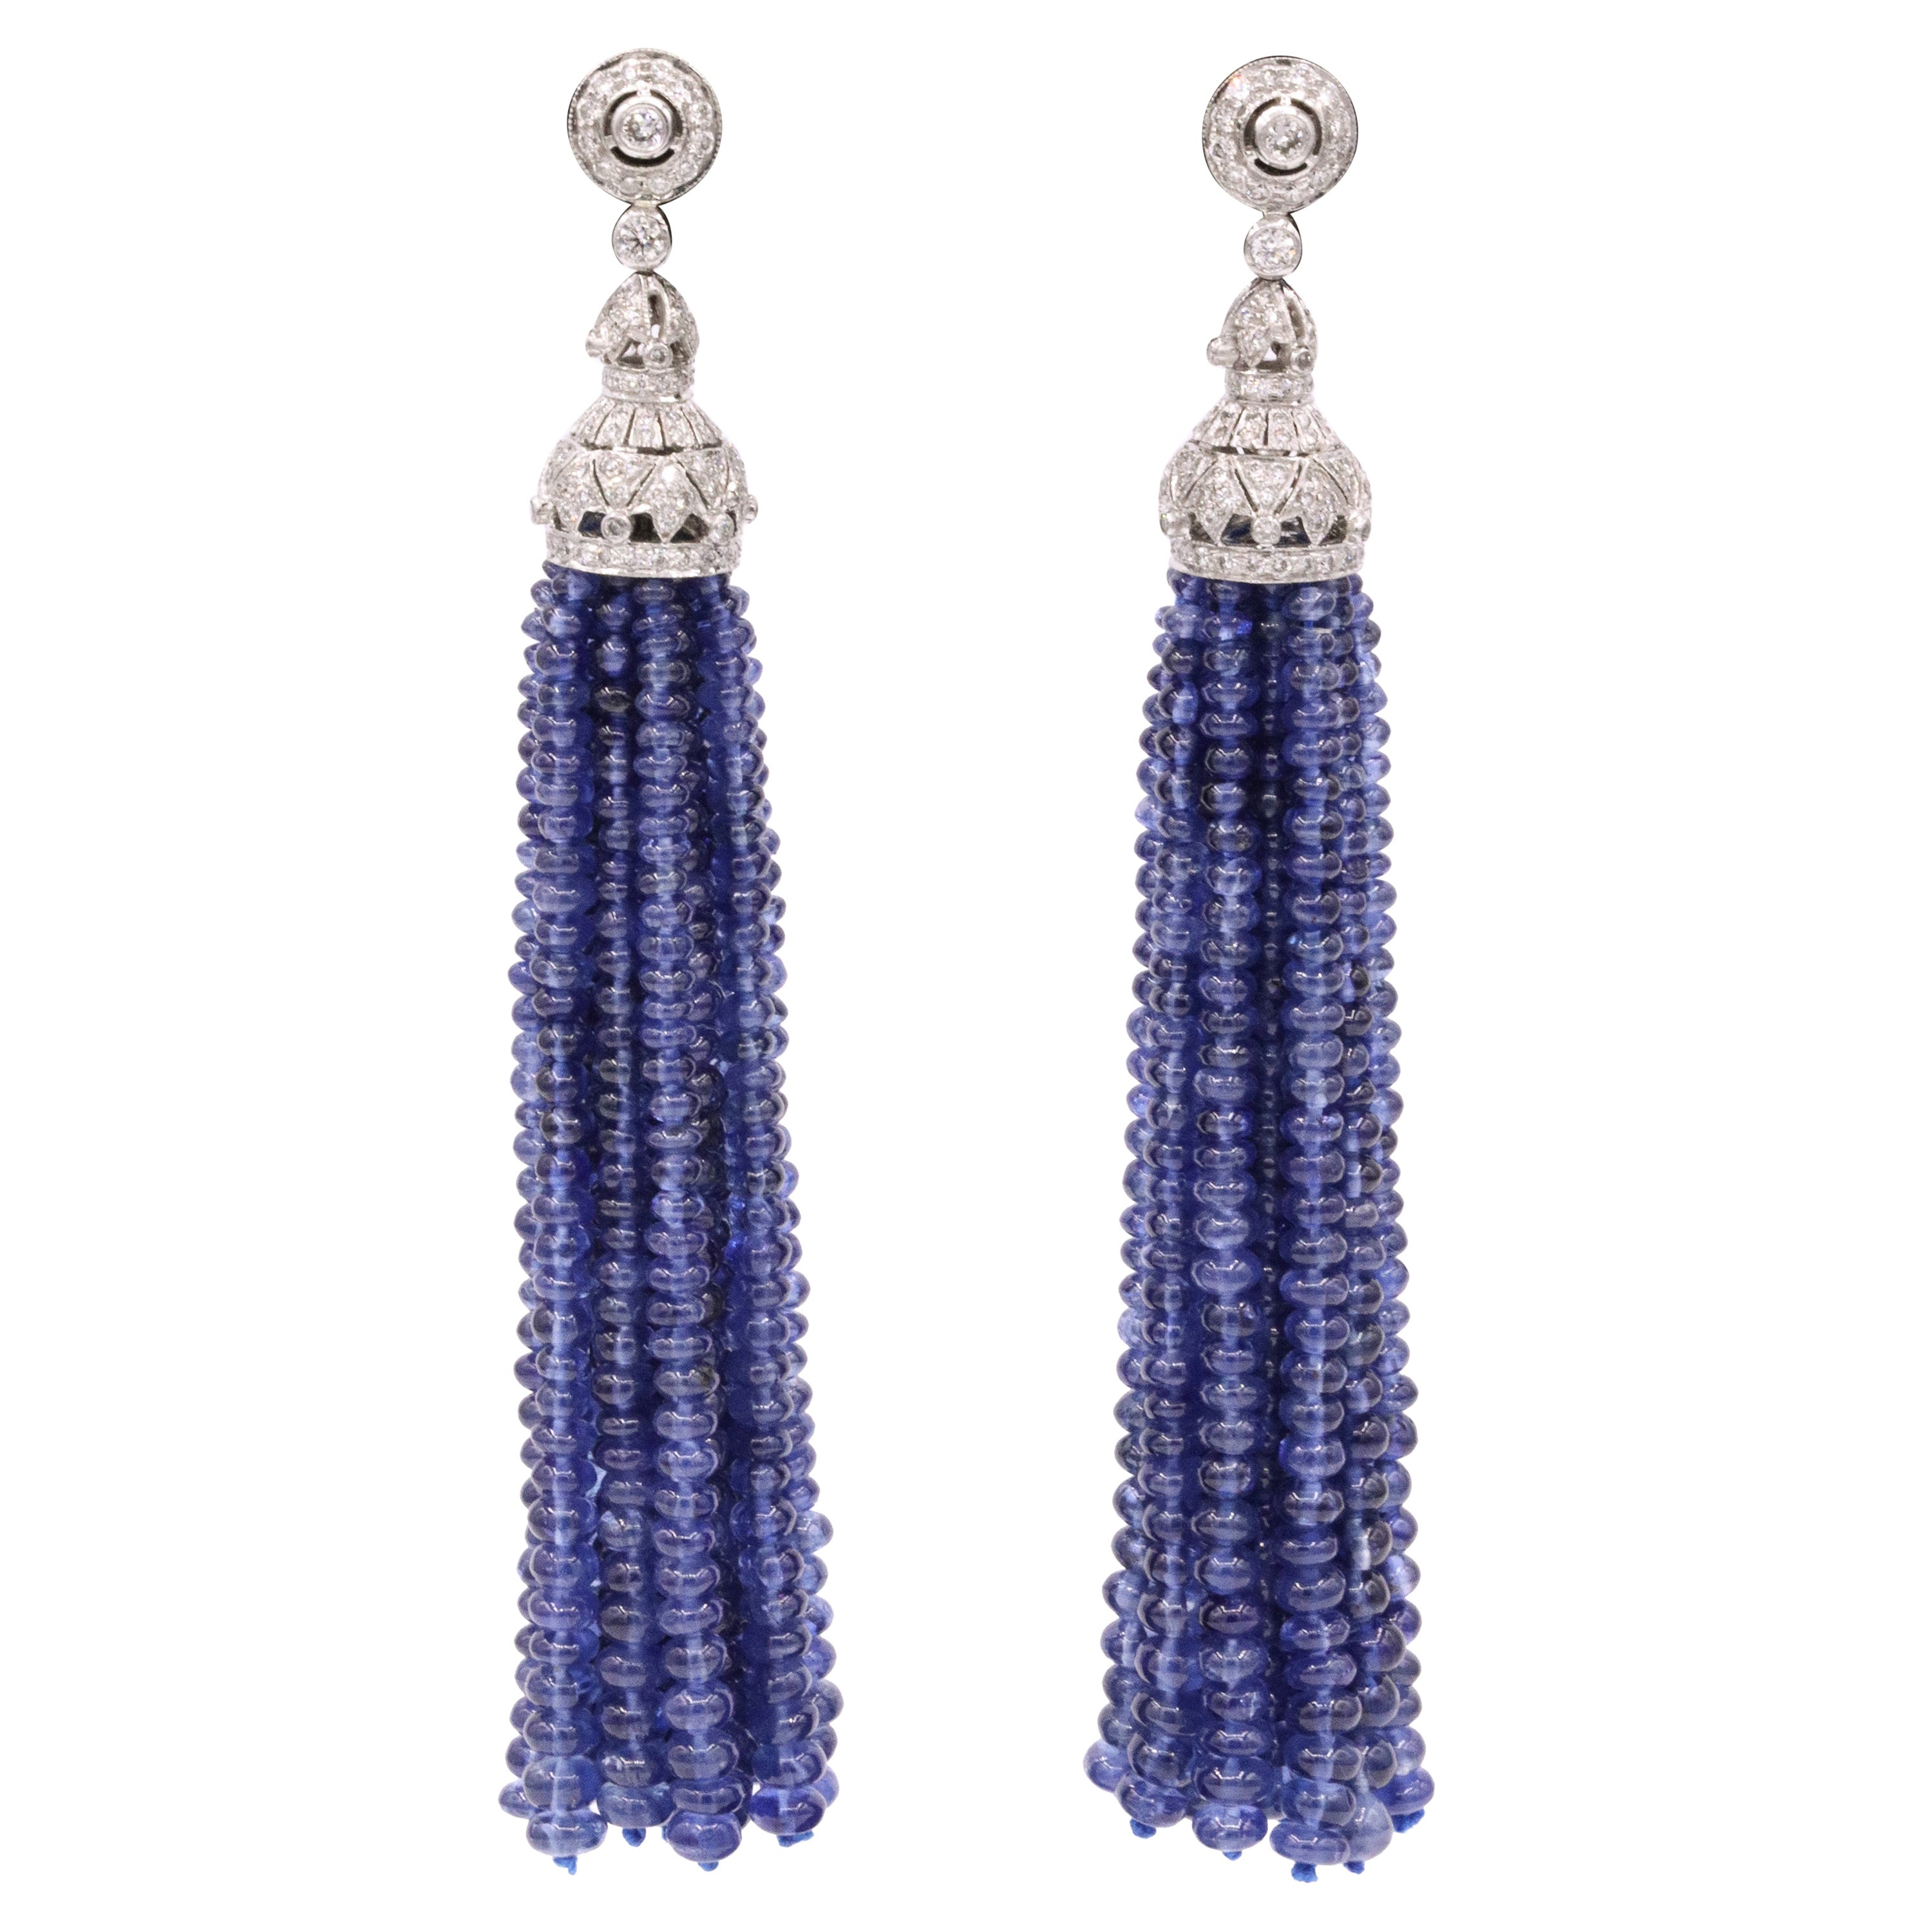 Sapphire Diamond Tassel Earrings 150 Carat 18 Karat White Gold